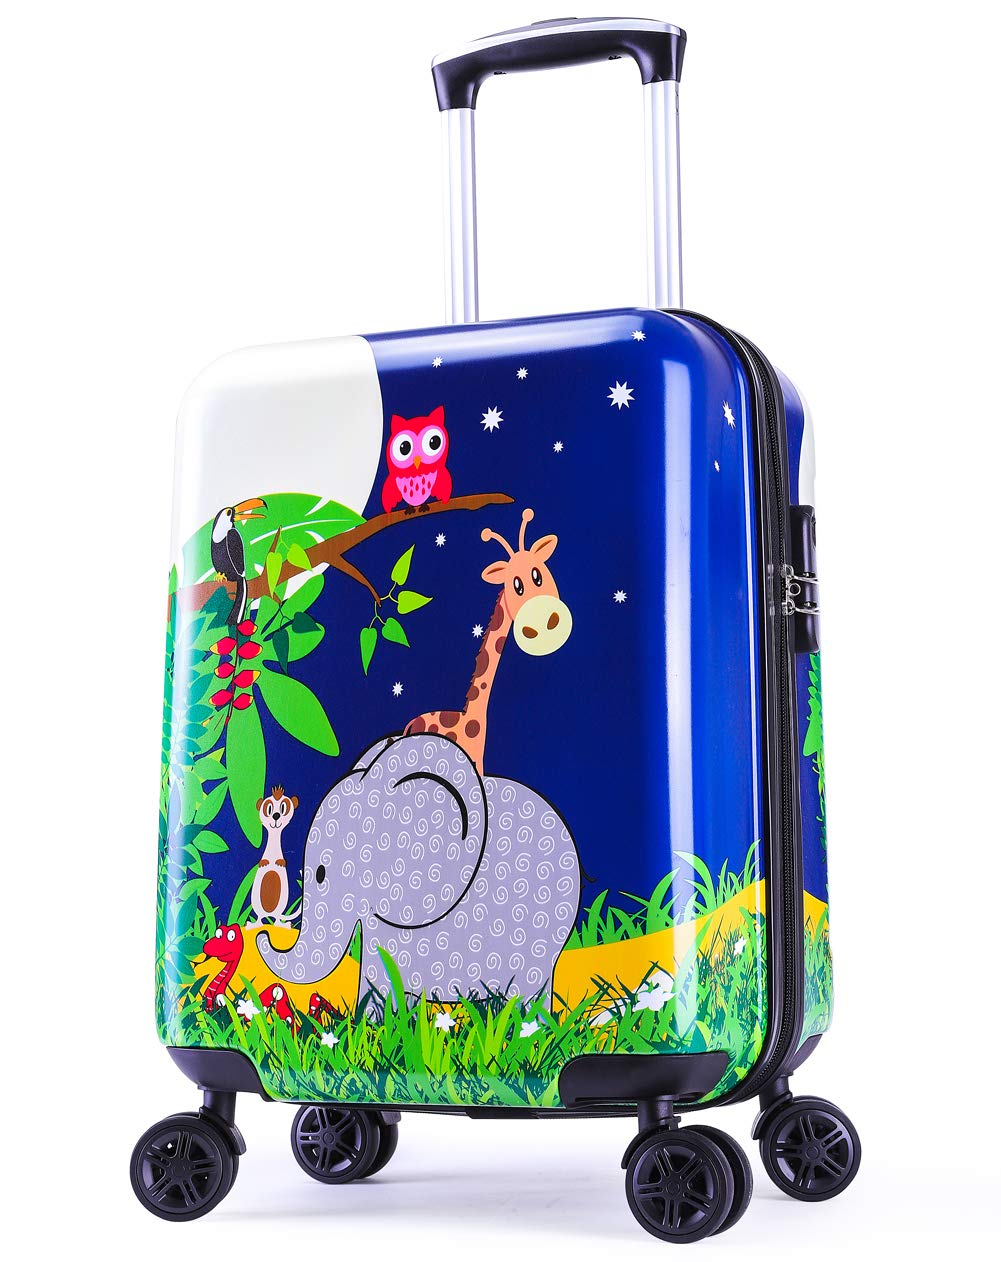 Boys Luggage Anti-scratch Suitcase 19in Hardshell Spinner Carry on PC+ABS Elephant LeLeTian by LeLeTian (Image #1)